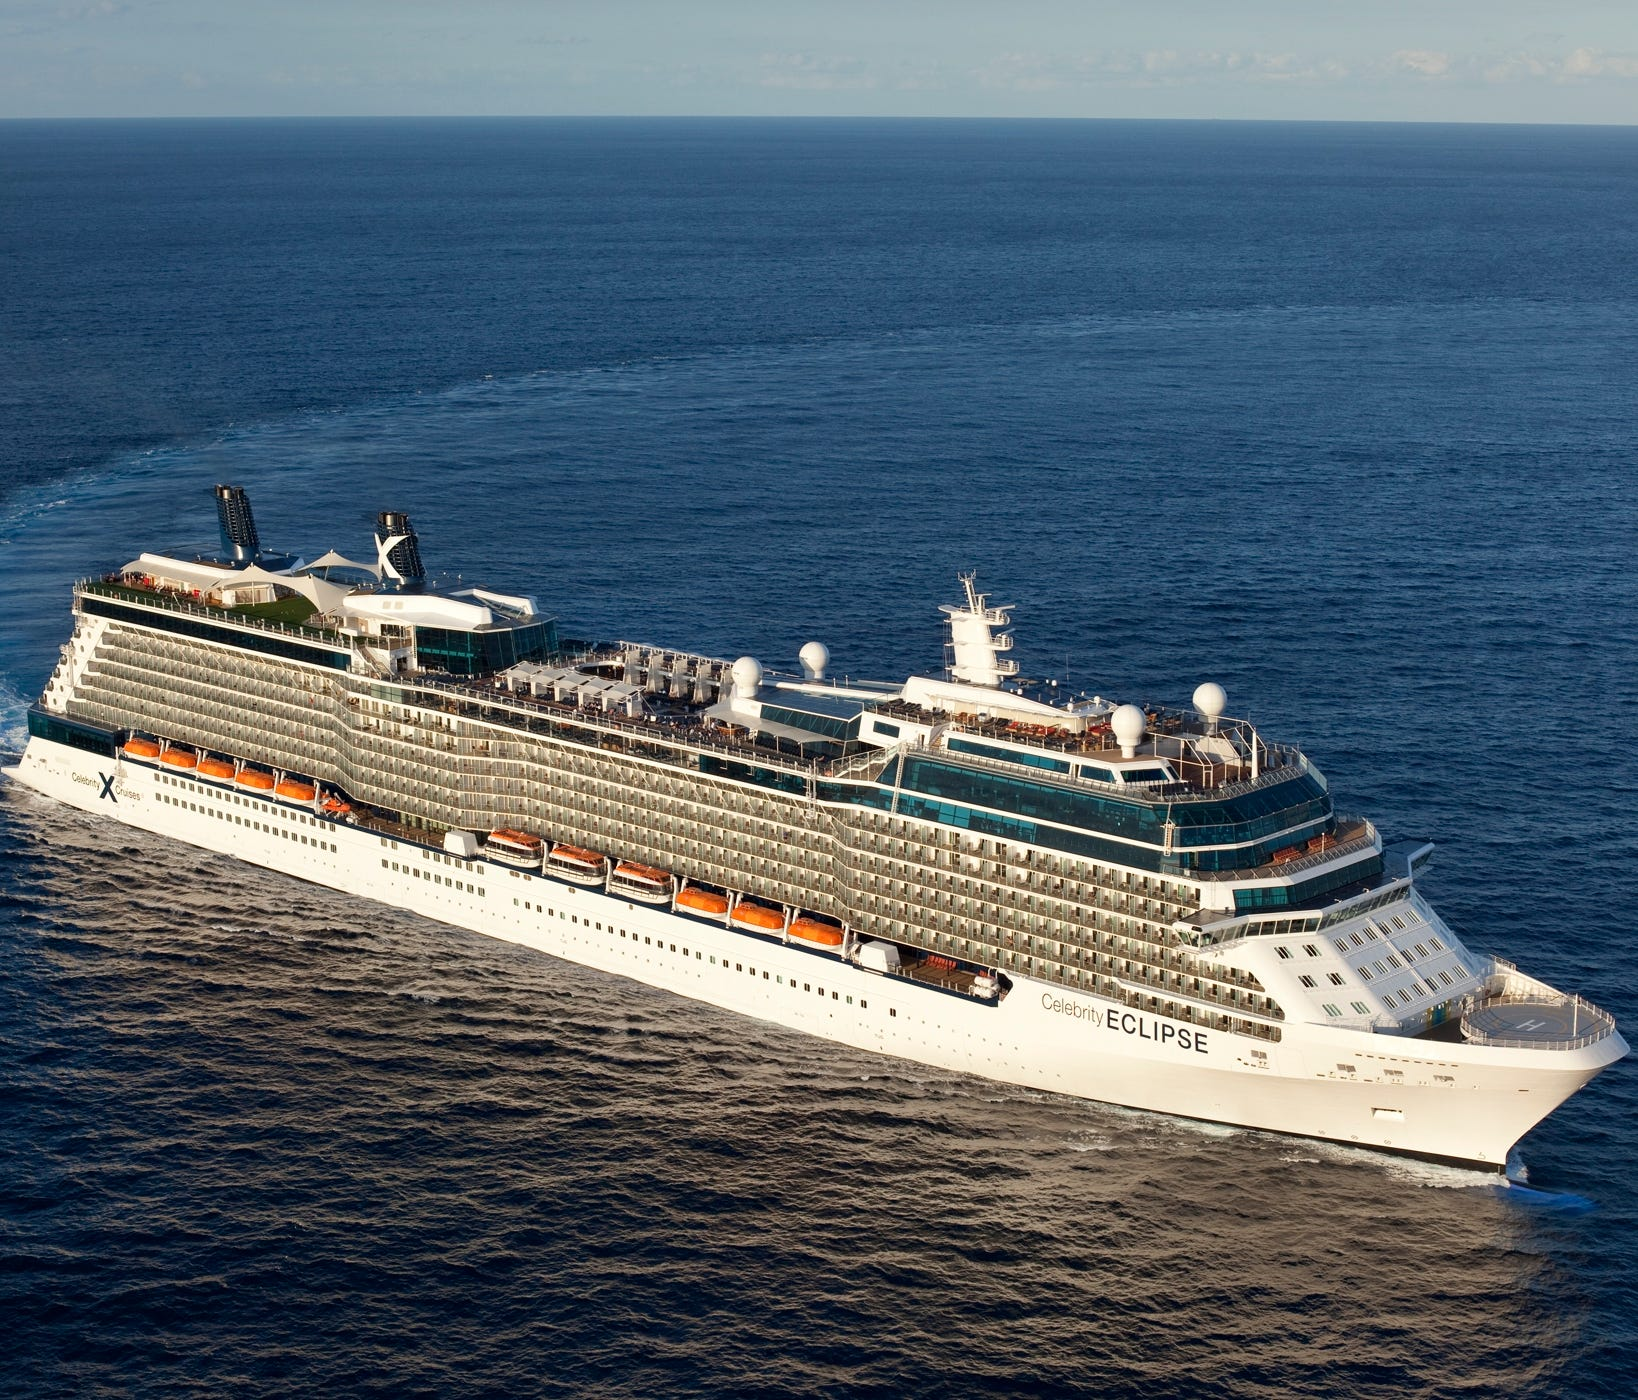 32. Celebrity Eclipse, built by Celebrity Cruises in 2010, weighs 121,878 GT and carries 2,853 passengers at double occupancy.